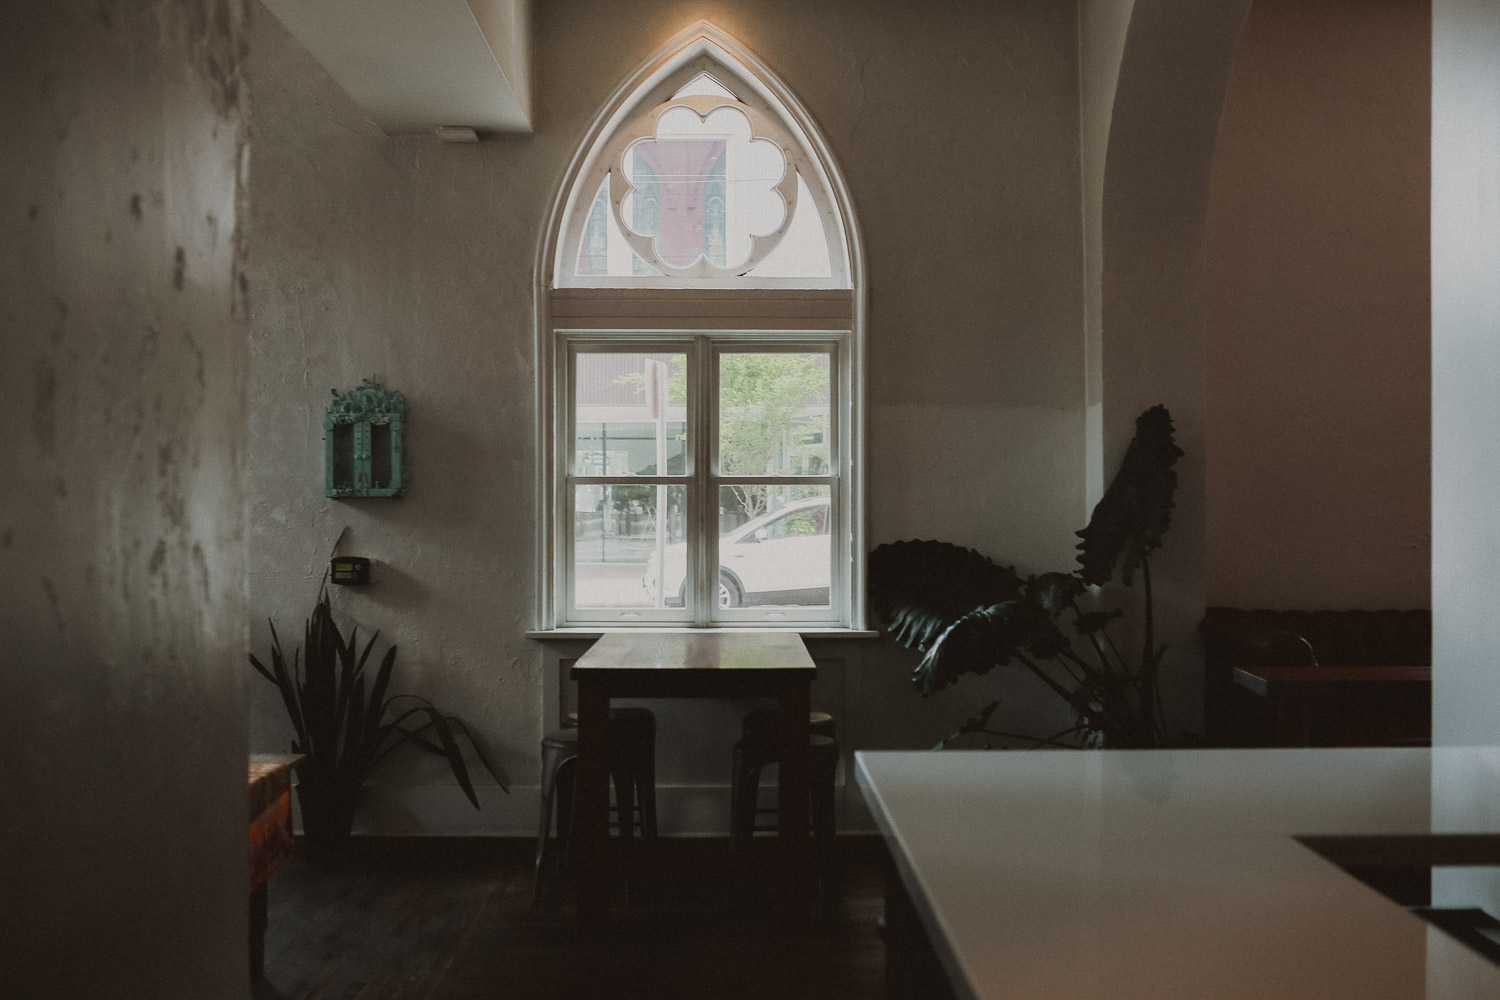 interior detail of the transept in otr